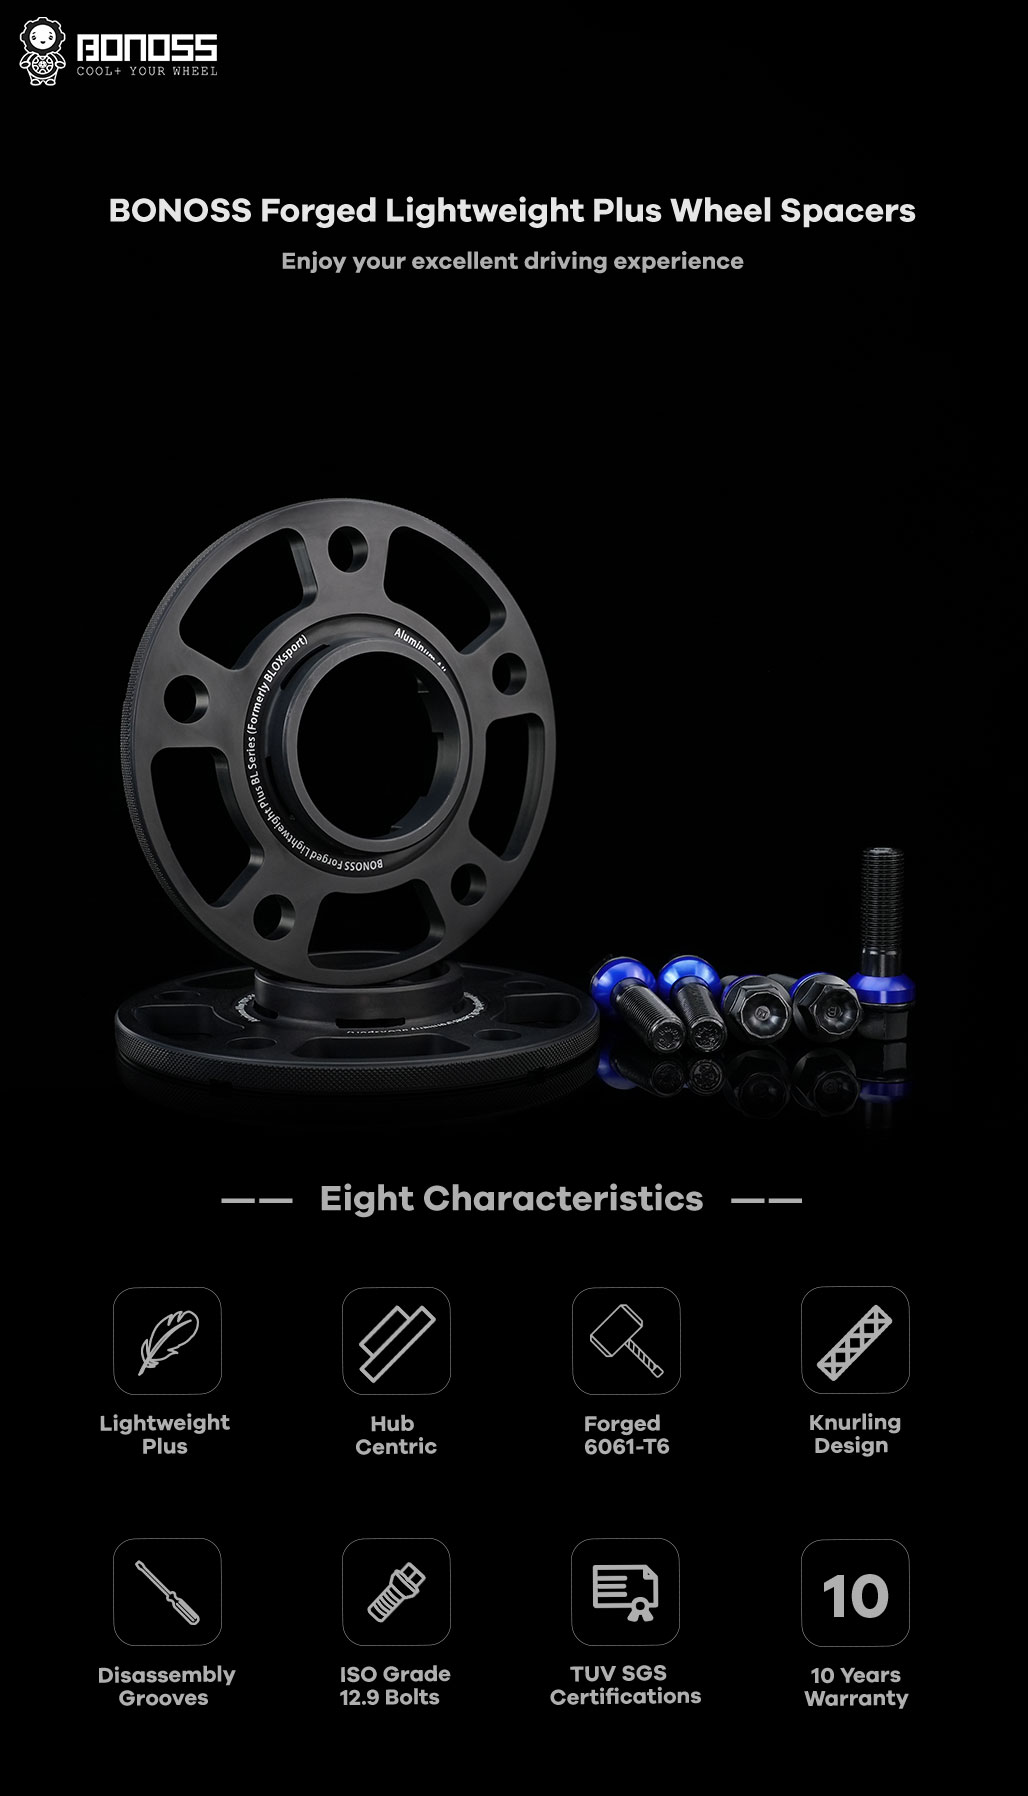 BONOSS-forged-lightweight-plus-5petals-special-hubcentric-wheel-spacer-for-Porsche-Taycan-5x130-71.6-14x1.5-6061t6-by-grace-1